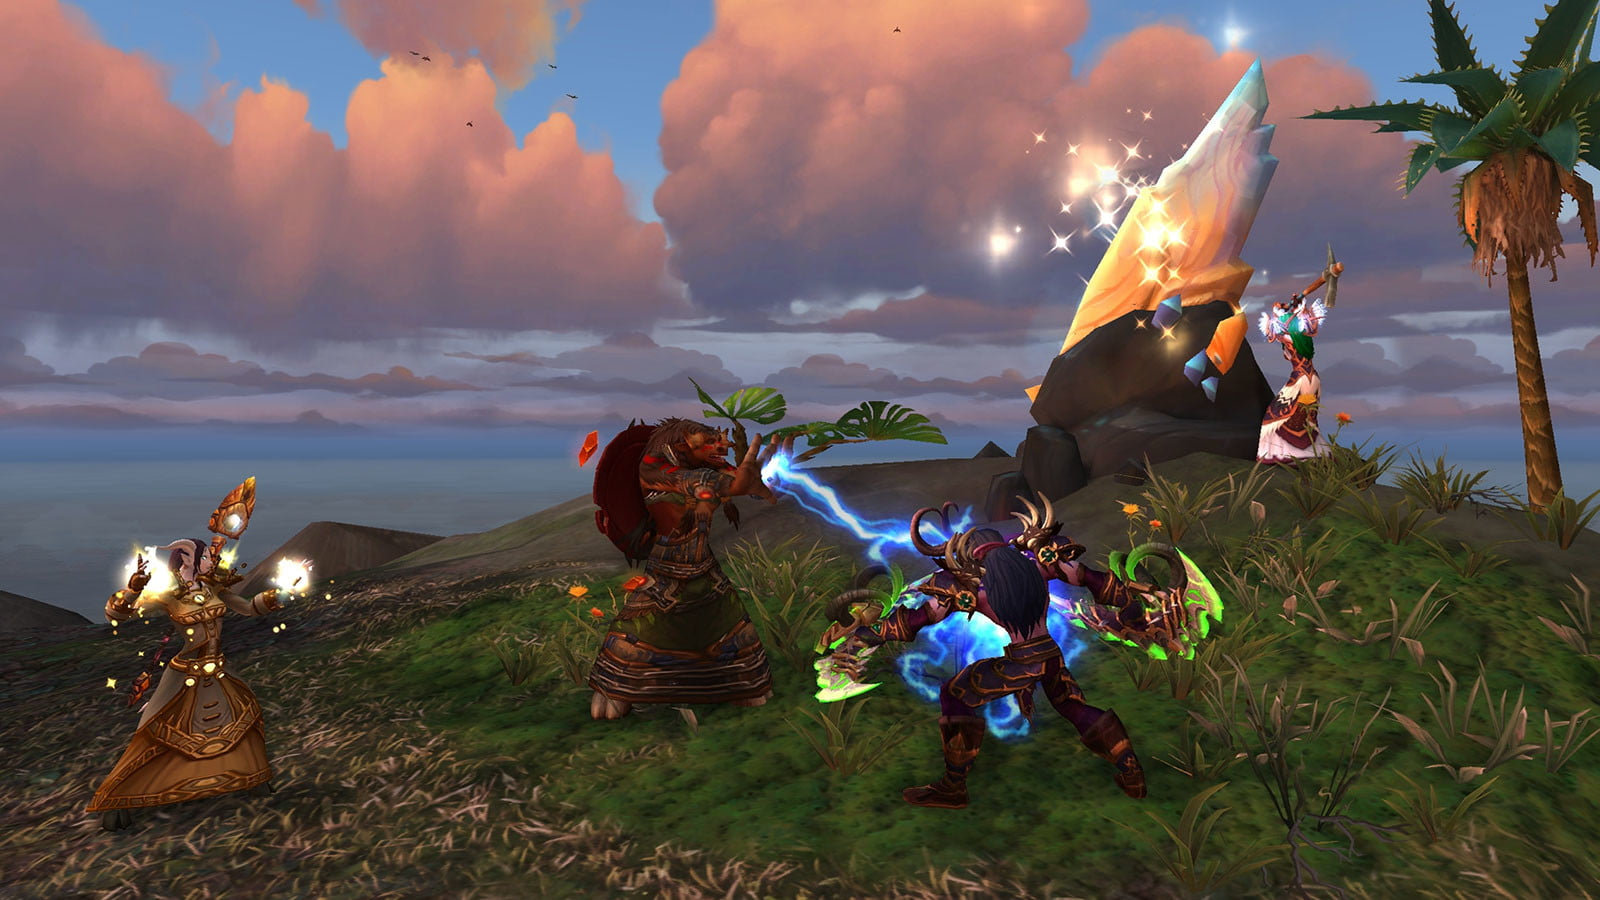 Battle for Azeroth Review: An Explosive Start That Fizzles